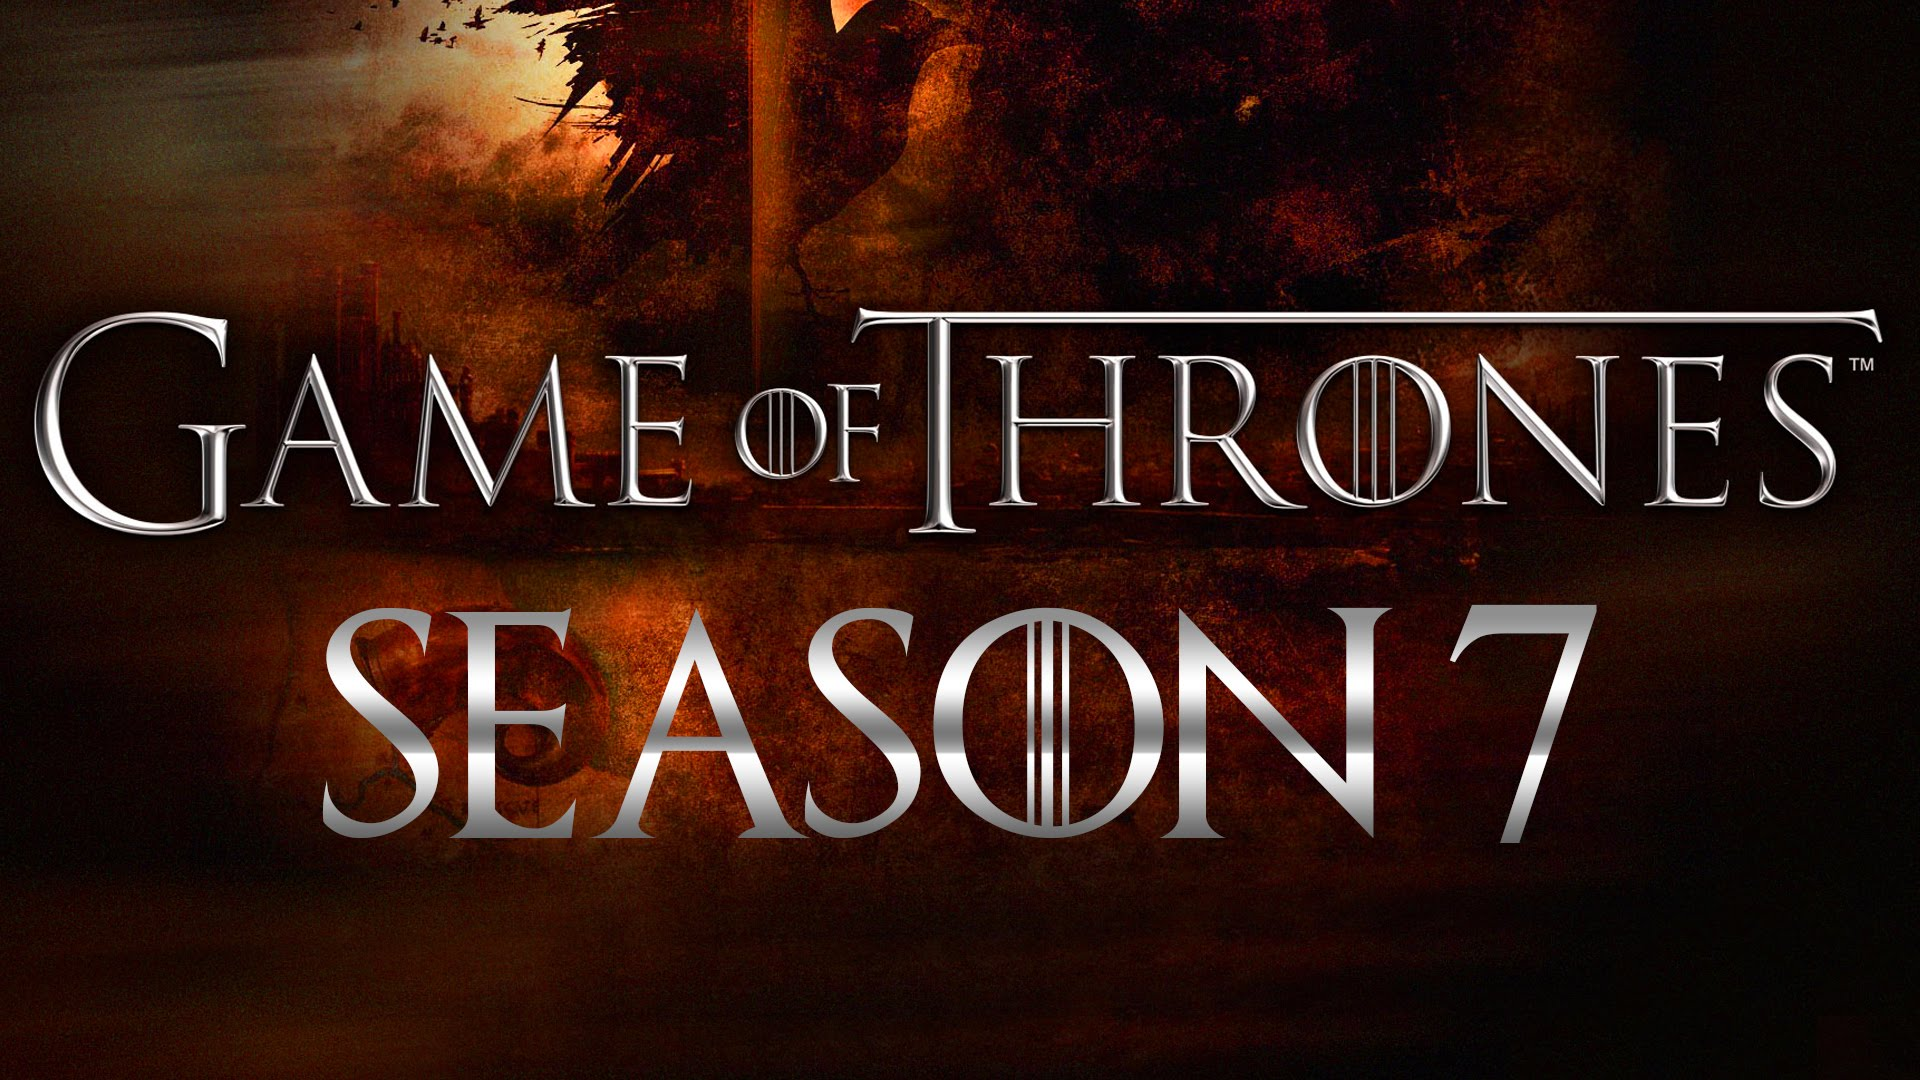 Game of Thrones S01E02 – The Kingsroad, serial online subtitrat